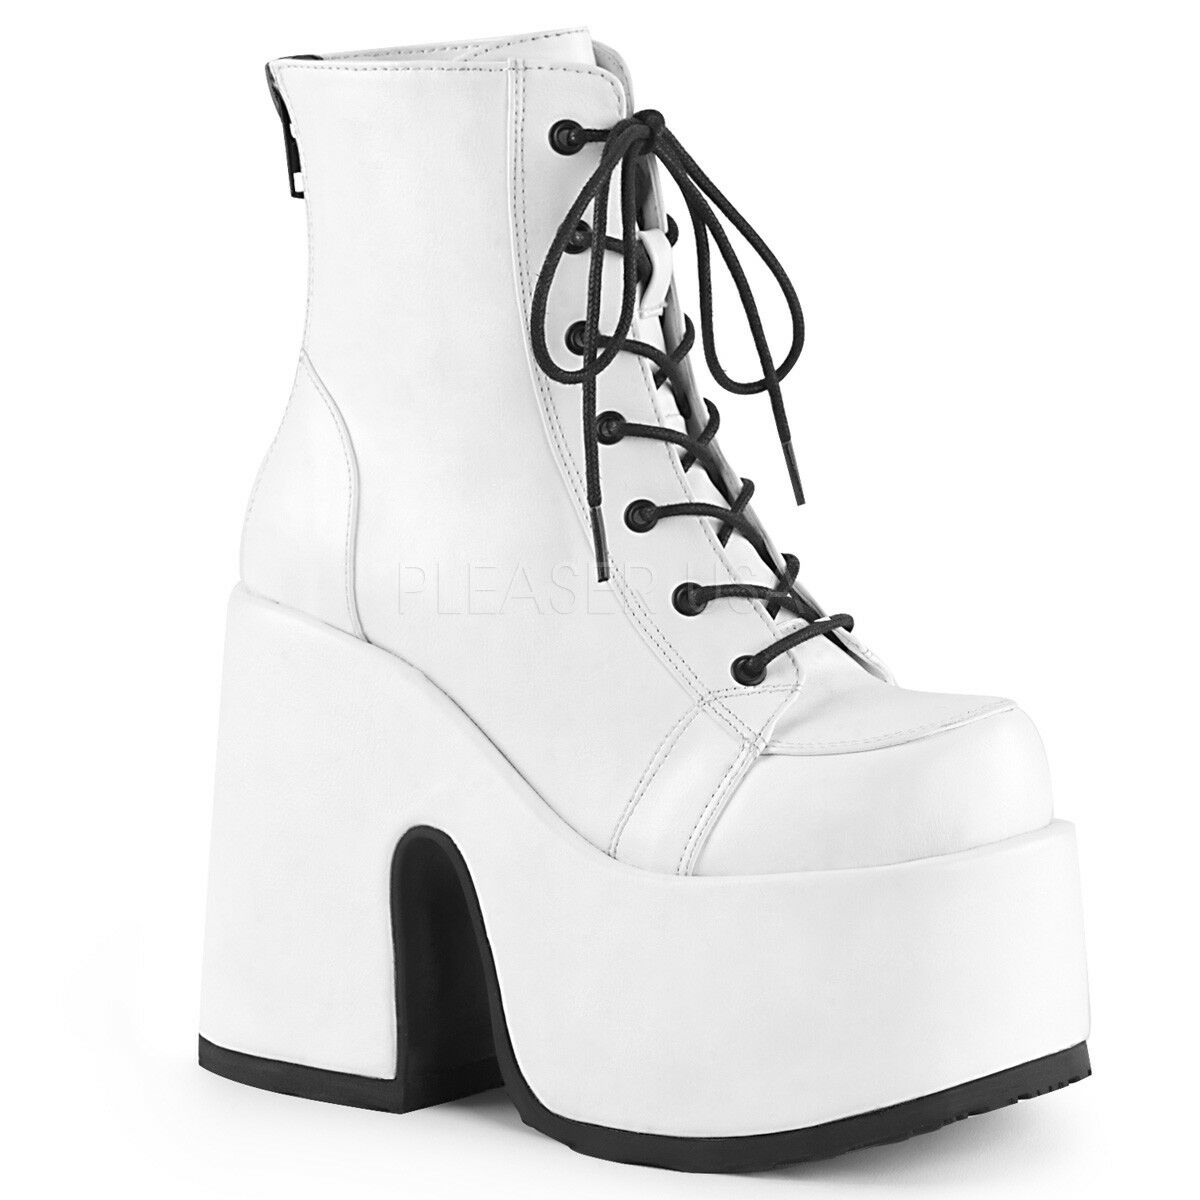 Demonia 5  Chunky Heel White Gothic Ankle Boots 6 7 8 9 10 11 12